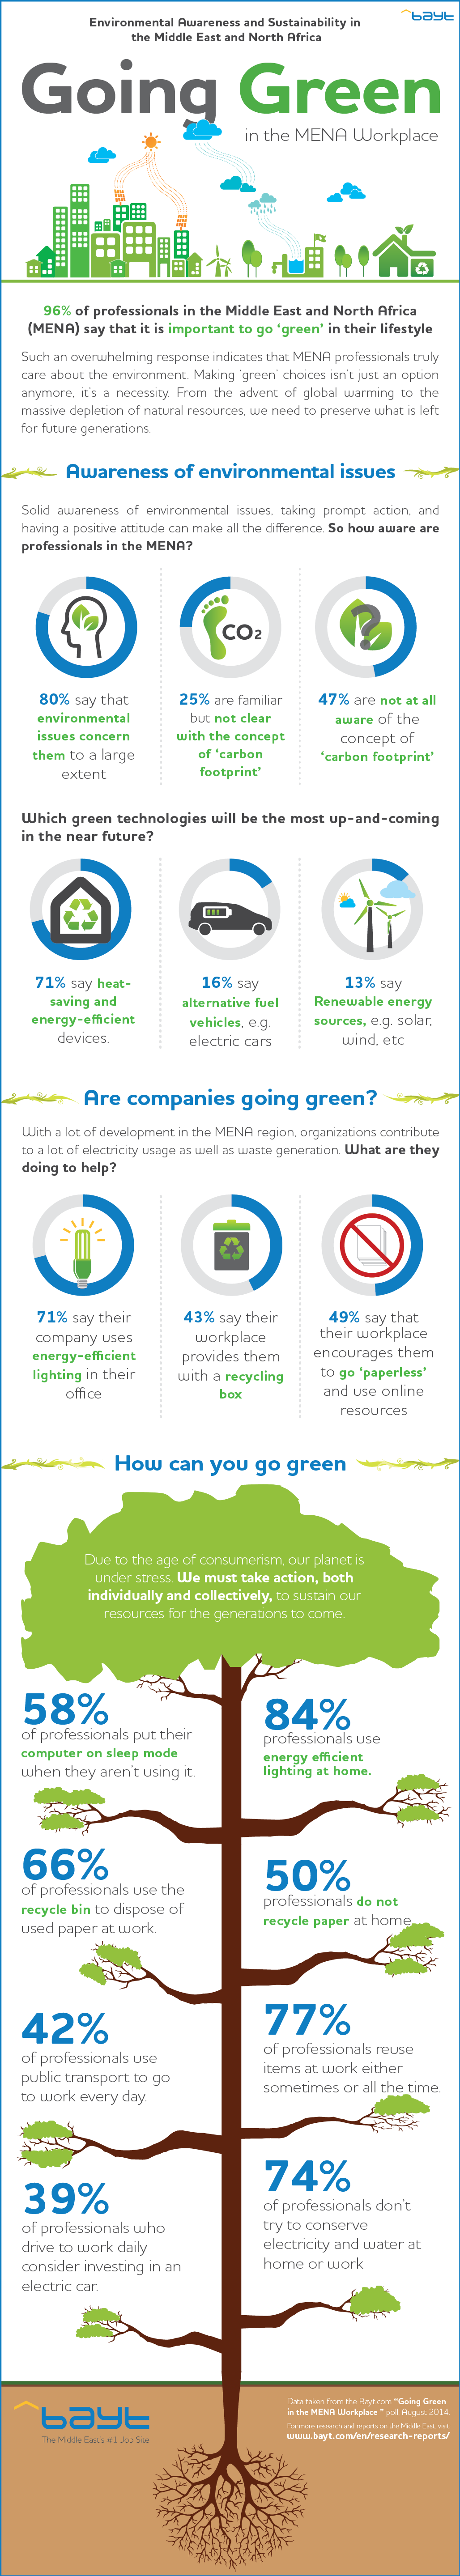 Going Green in the MENA Workplace